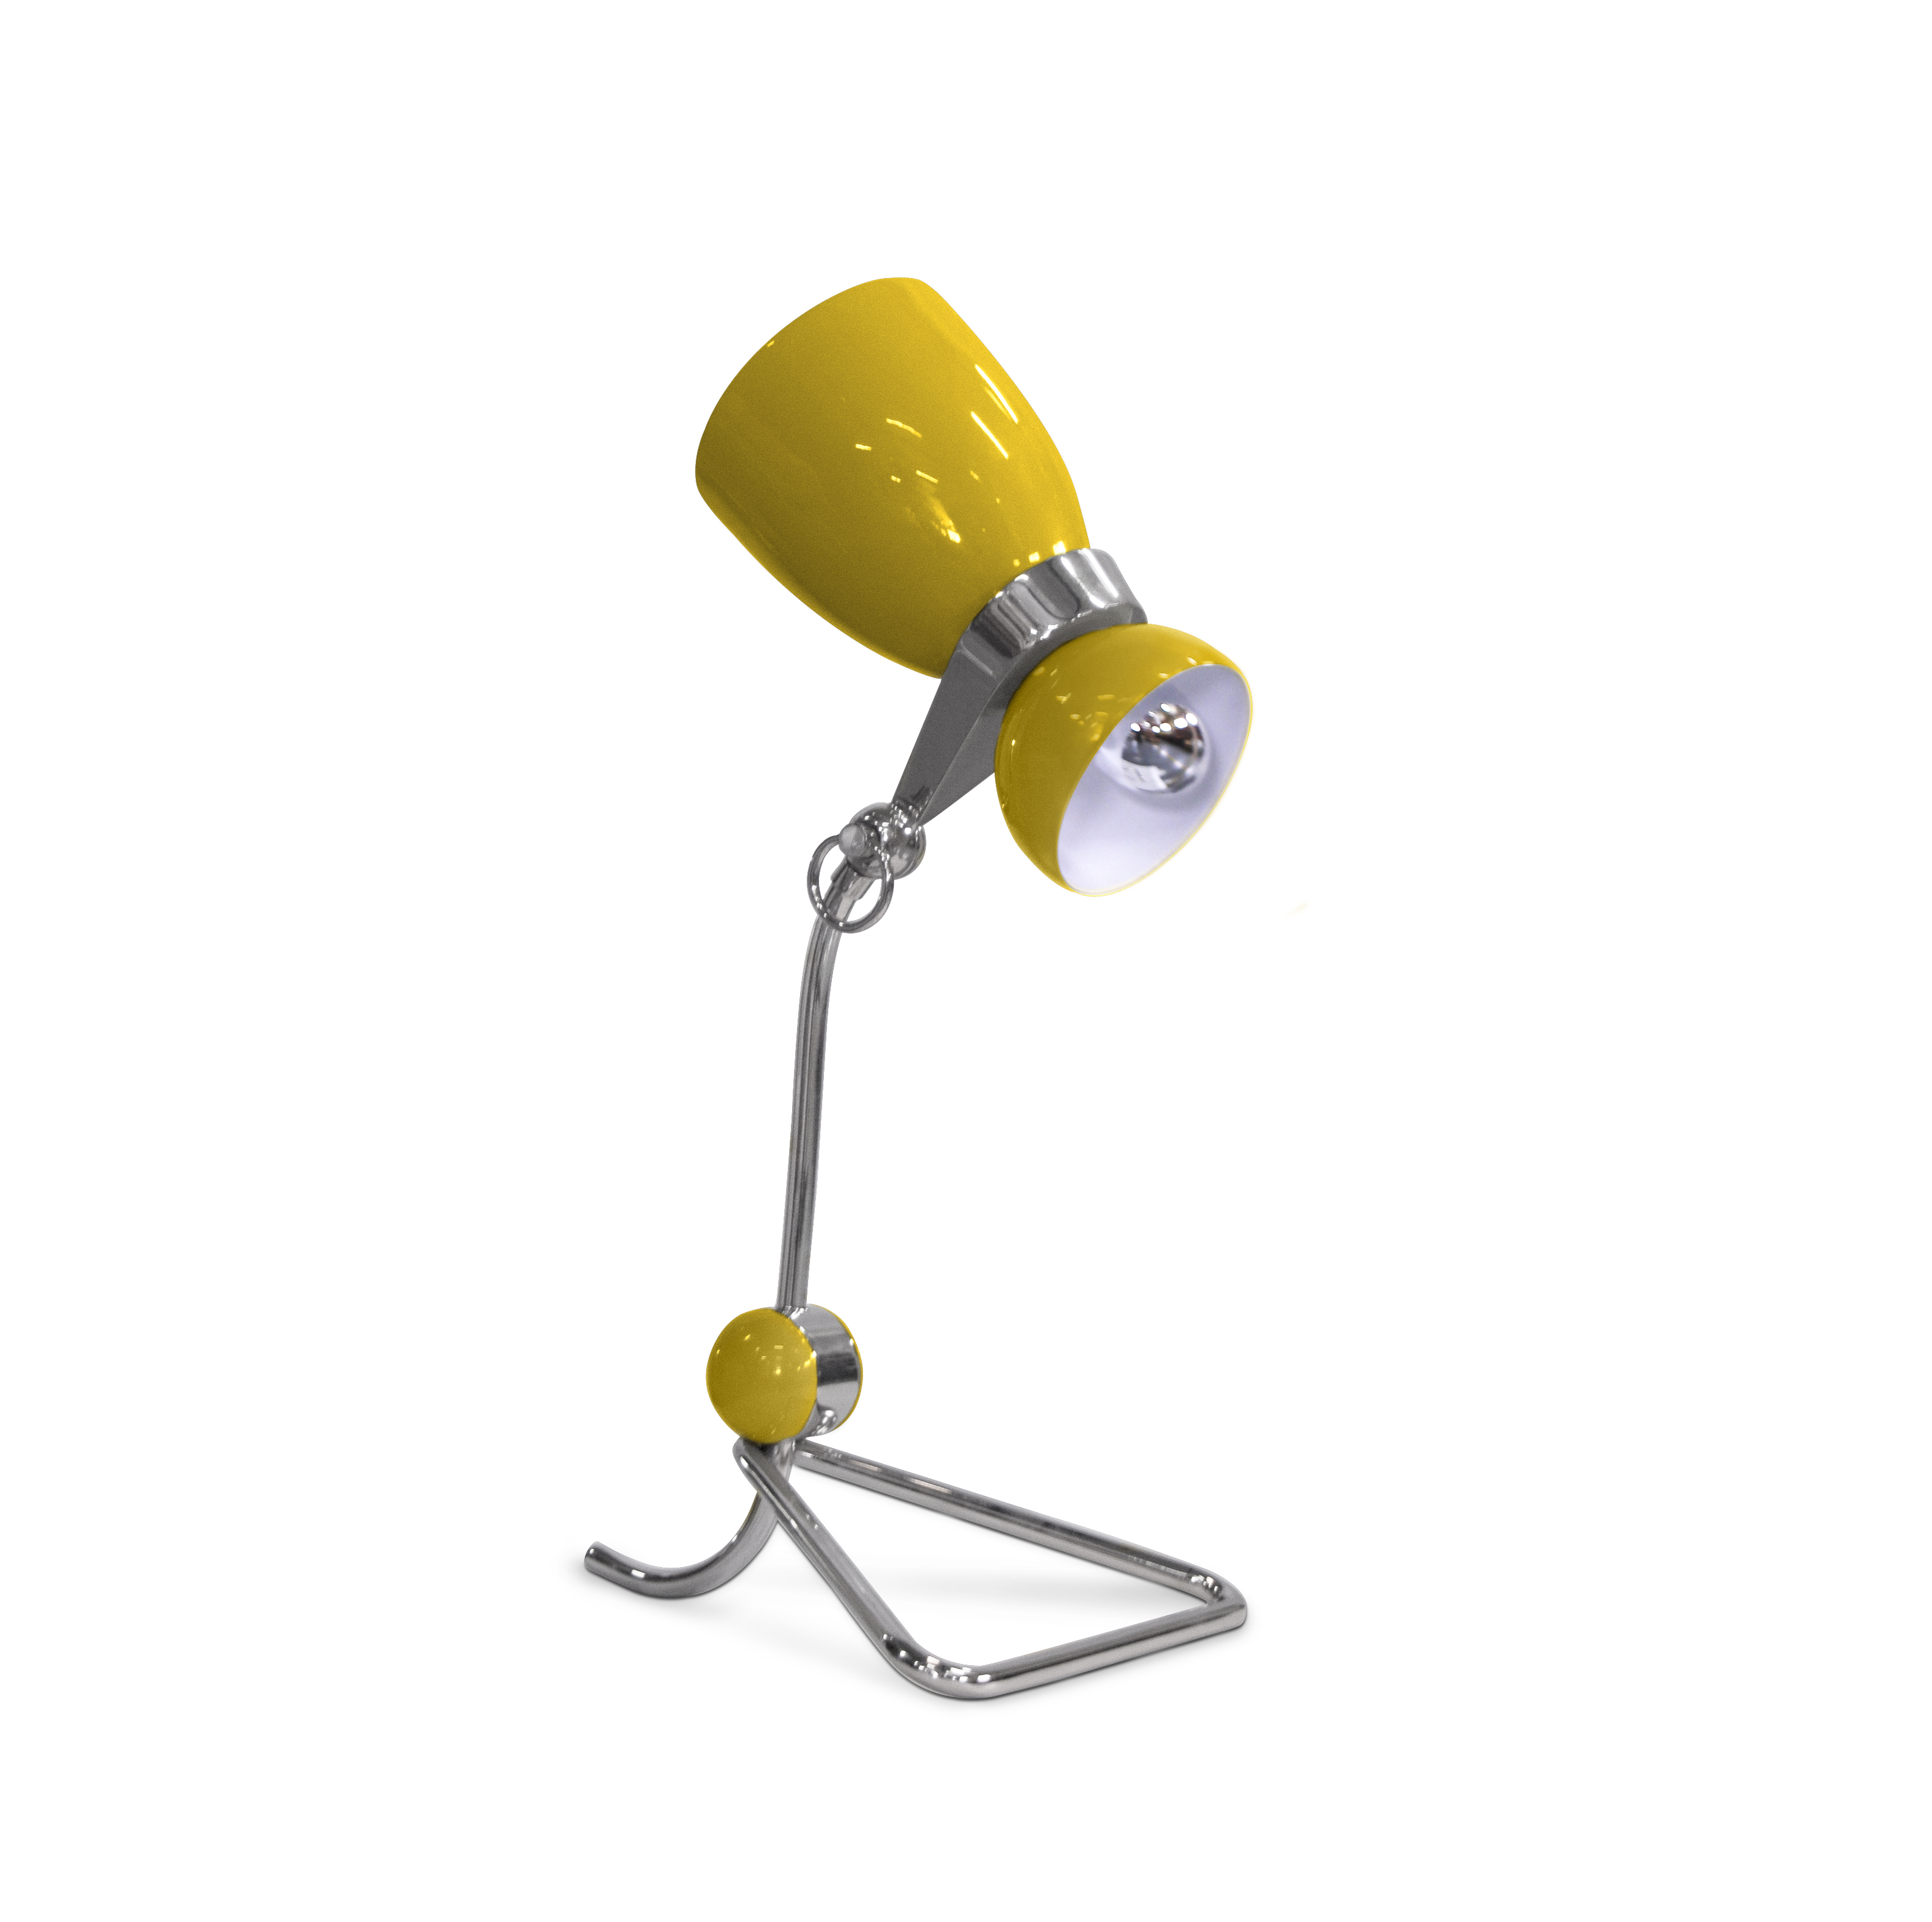 Contemporary Lamp Ideas- Boost Your Home Decor with This Desk Lamp